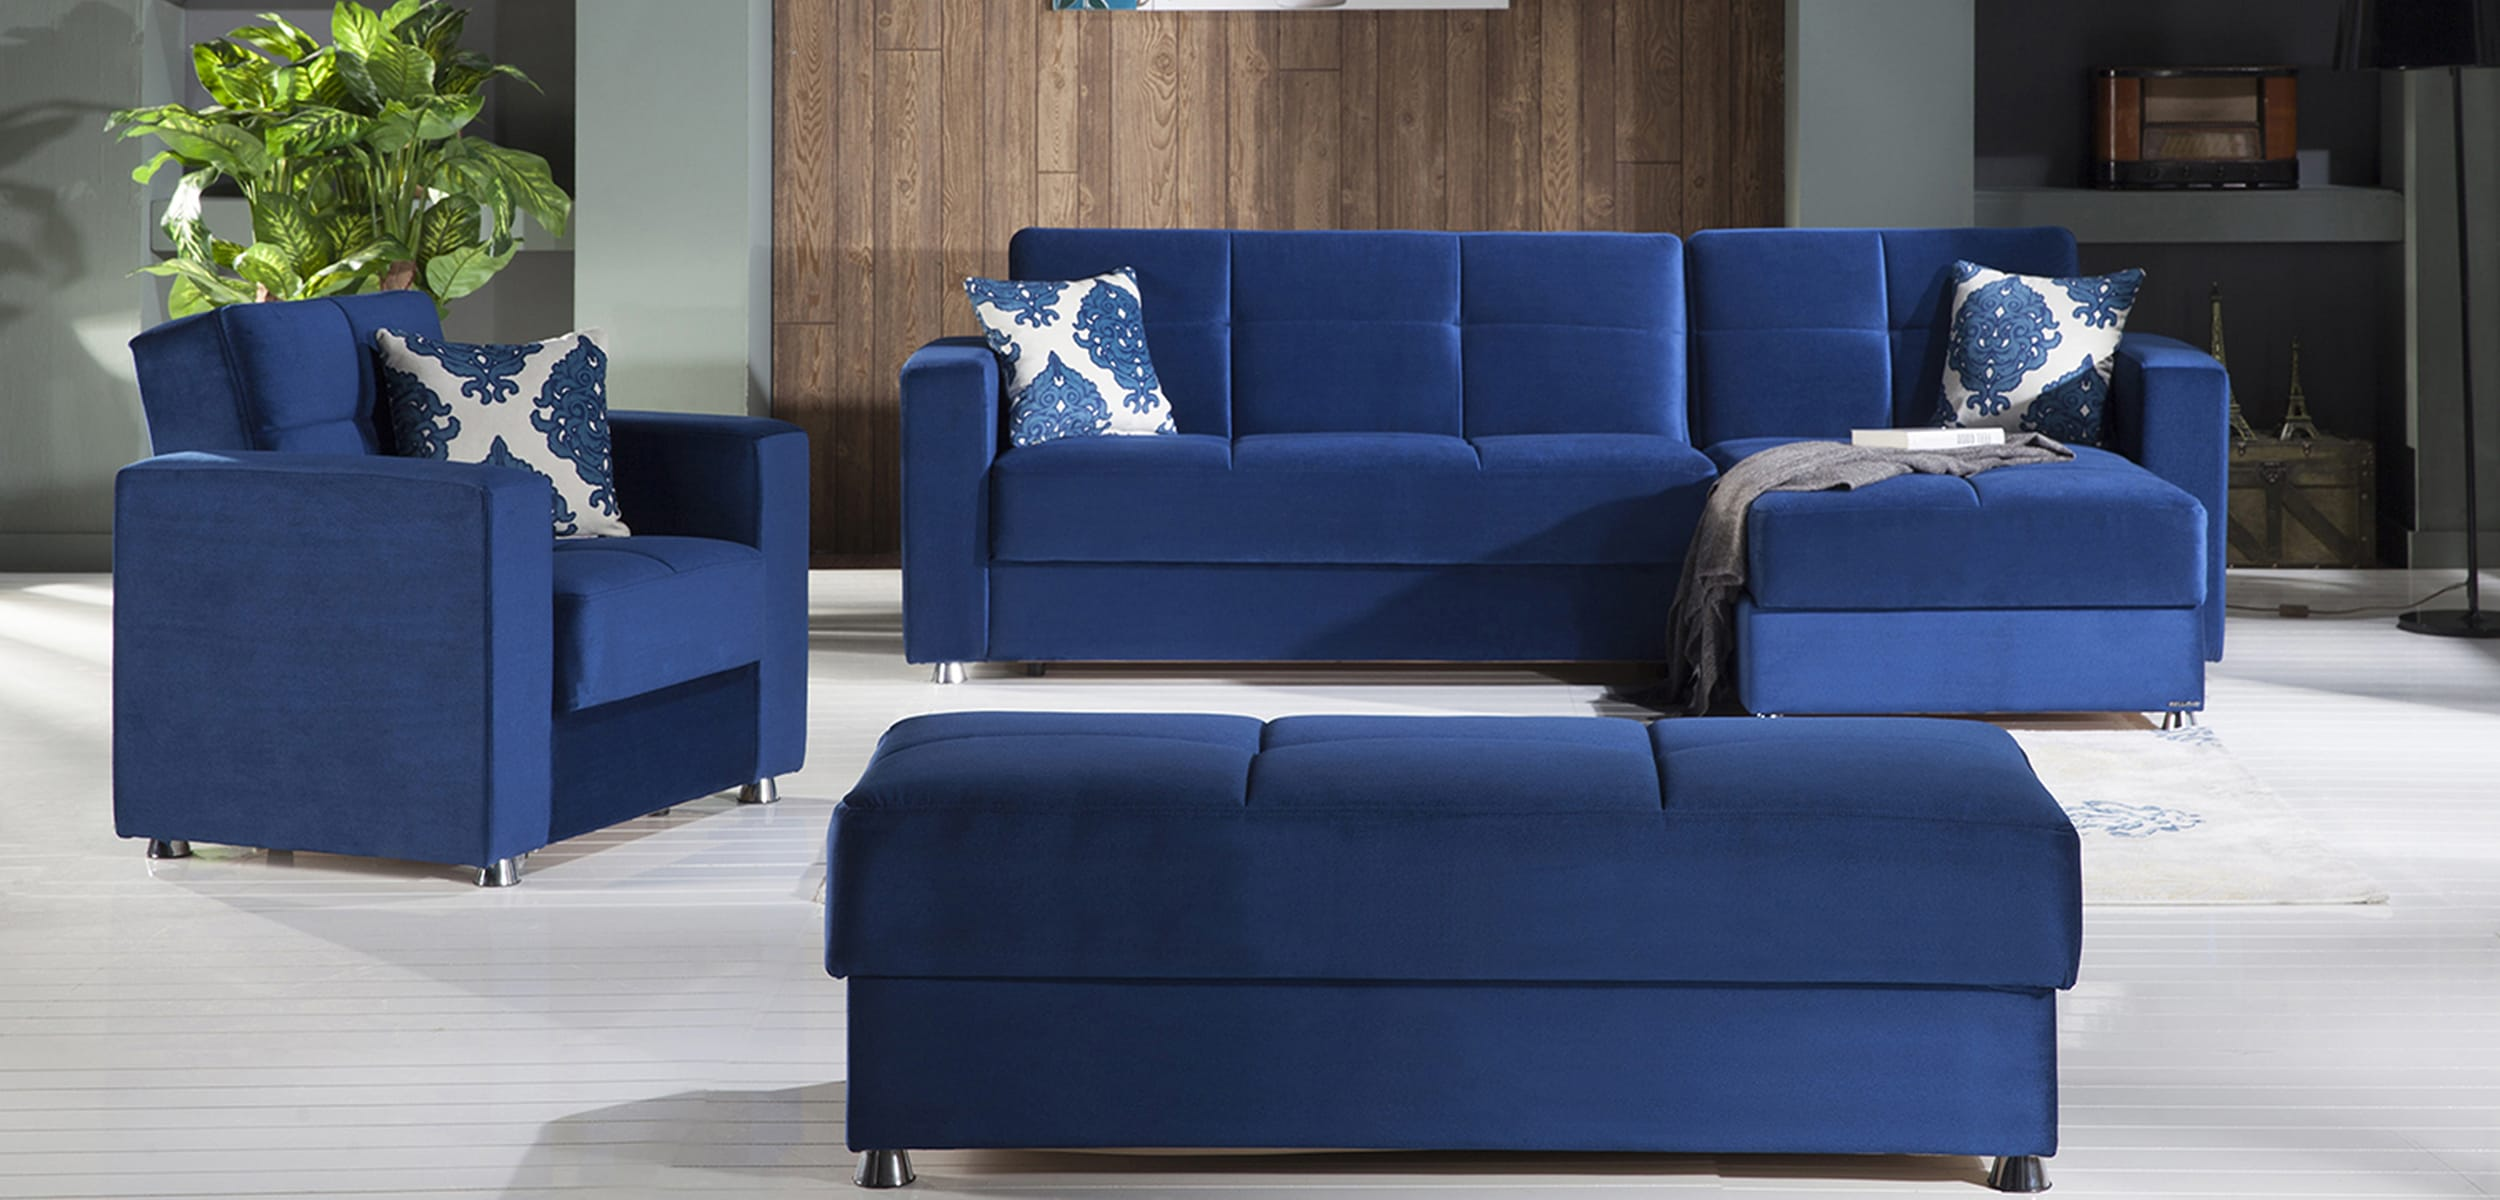 Elegant Roma Navy Sectional Sofa by Istikbal (Sunset)